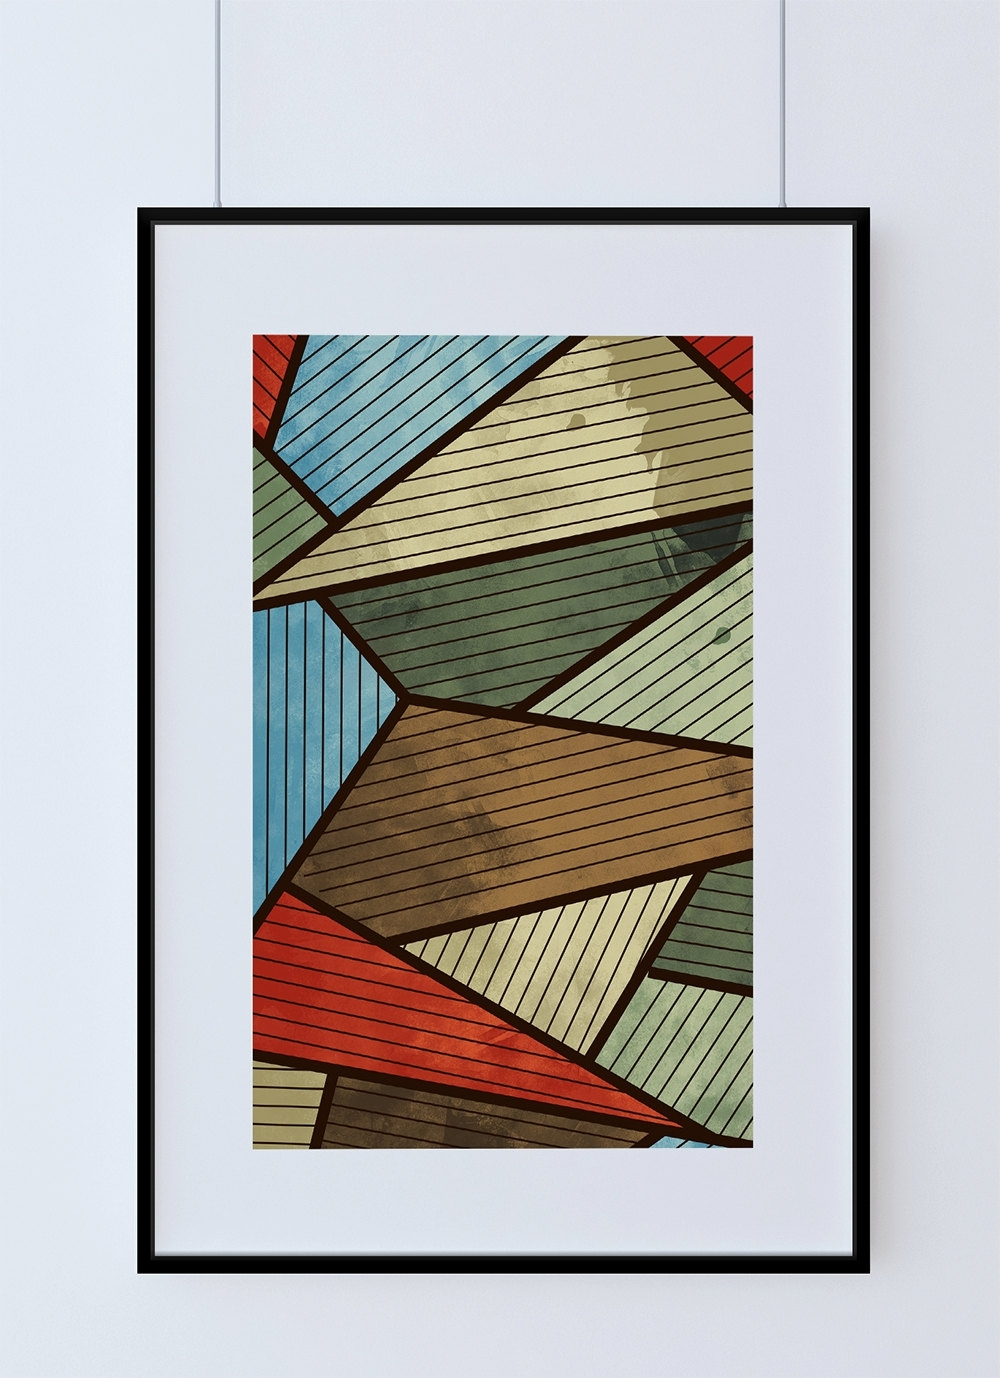 Mid Century Modern Print Abstract Art Print Poster Giclee On Cotton Regarding Most Recent Mid Century Modern Wall Art (View 8 of 20)